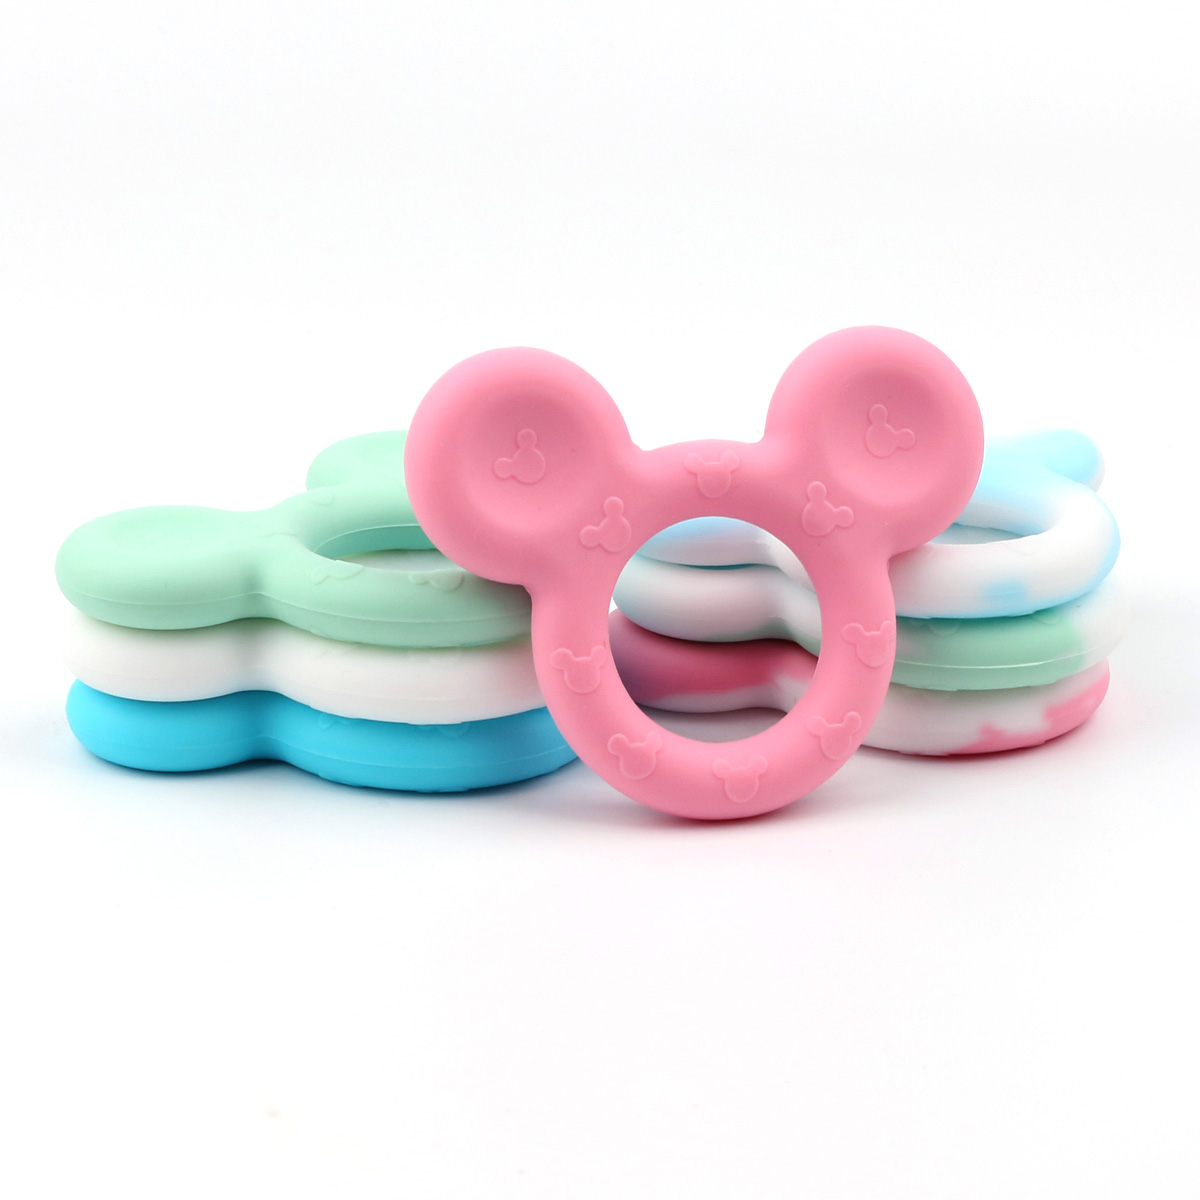 Food Grade Silicone Baby Teether Animal Baby Teething Toys Mickey Head Teether Ring Bpa Free Baby Chew Toy Soft Safe Baby Stuff duck animal series many chew toy page 7